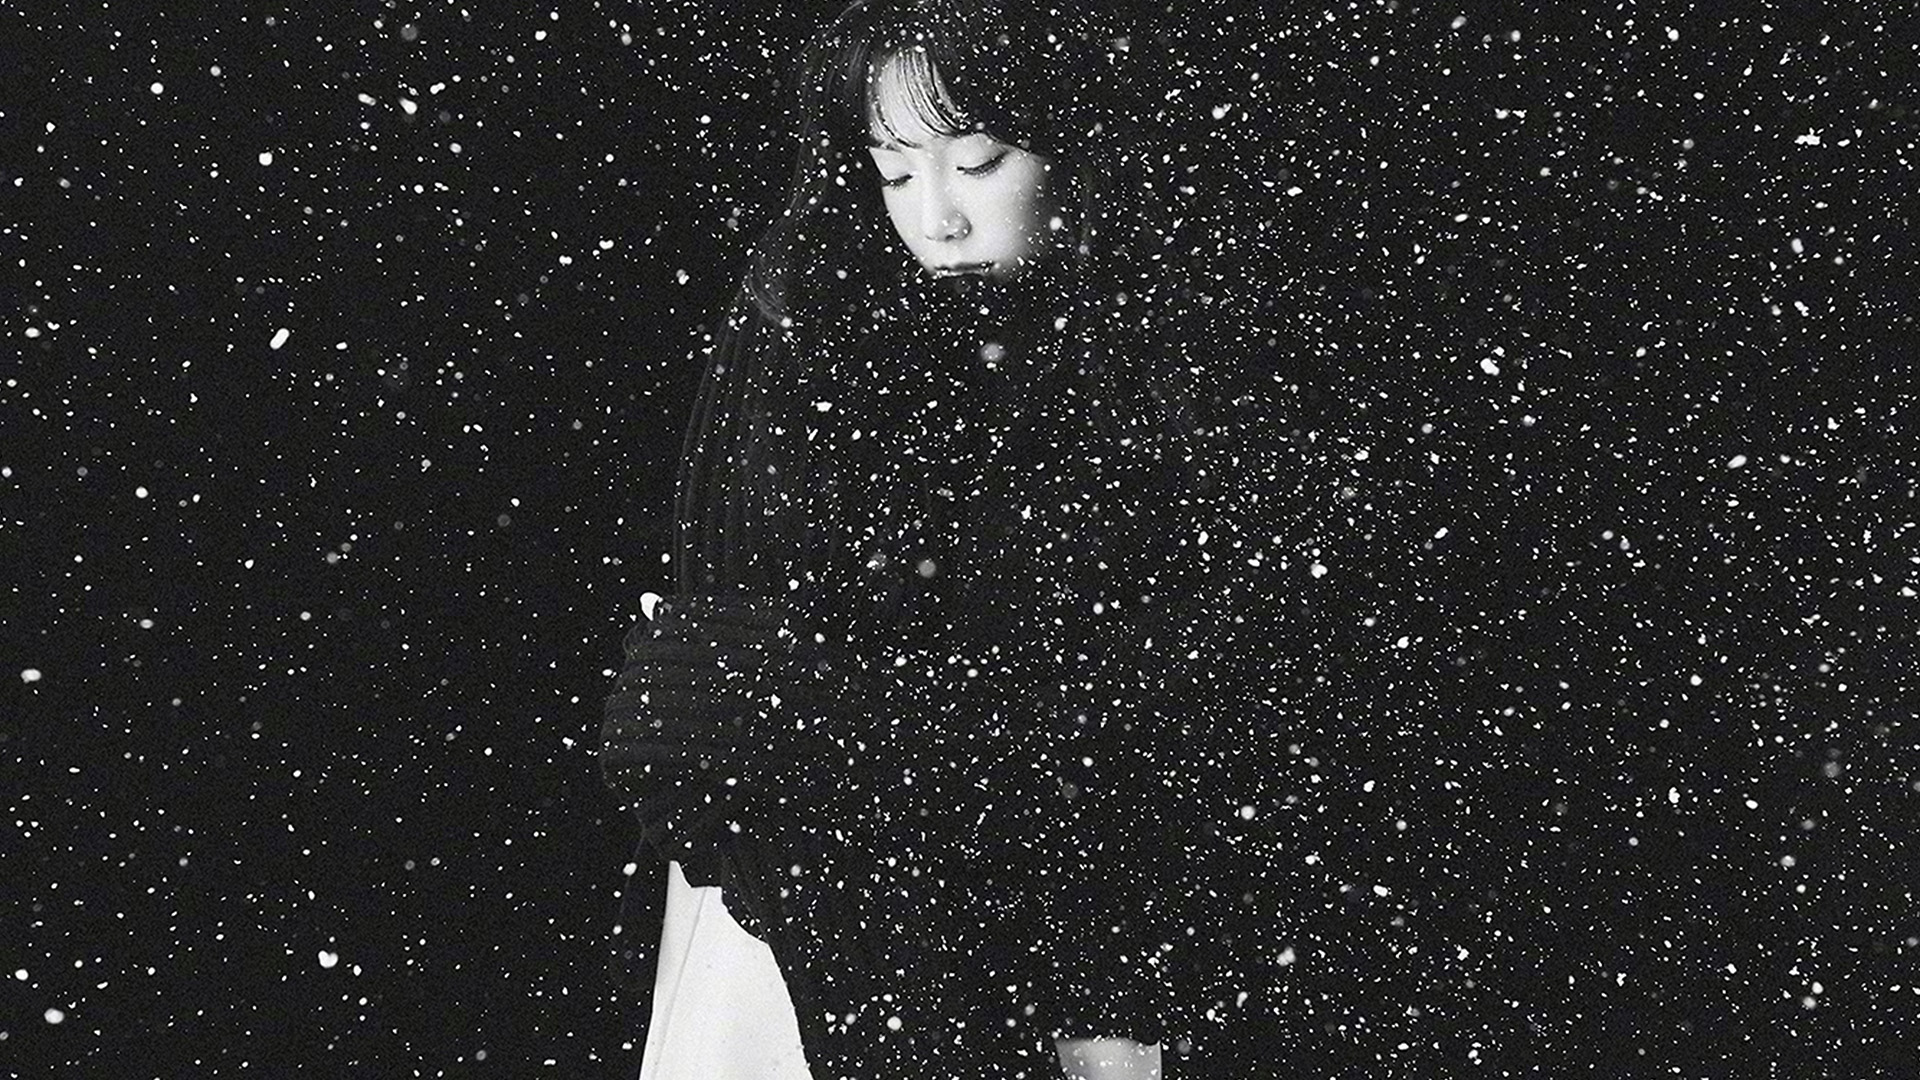 Ho98 Snow Girl Snsd Taeyeon Black Bw Kpop Wallpaper